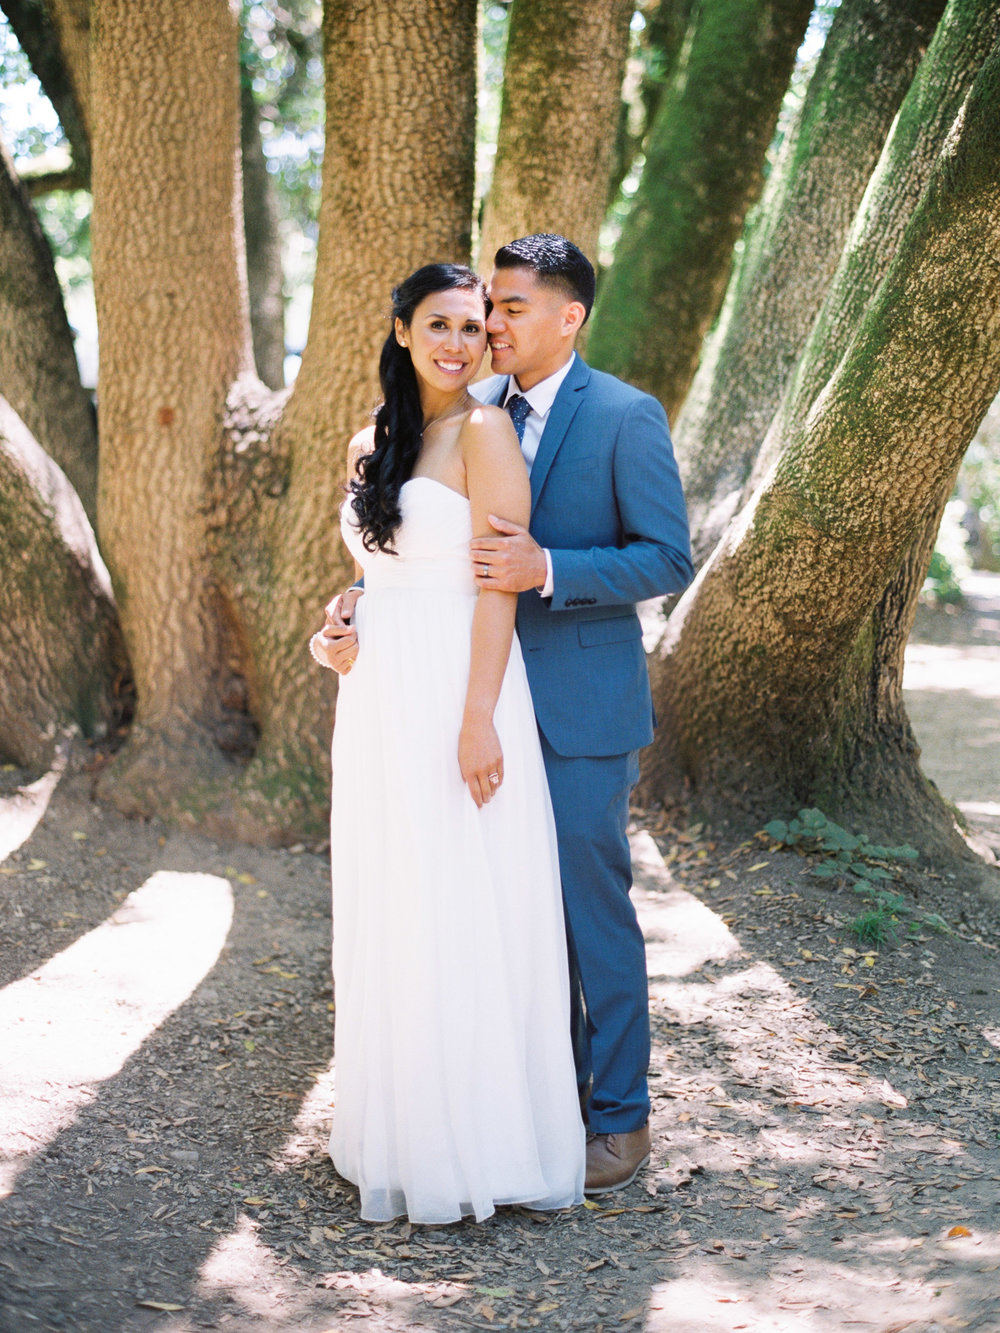 DESTINATION ELOPEMENT • TOP SECRET RED WOOD AFFAIR • MUIR WOODS, CA